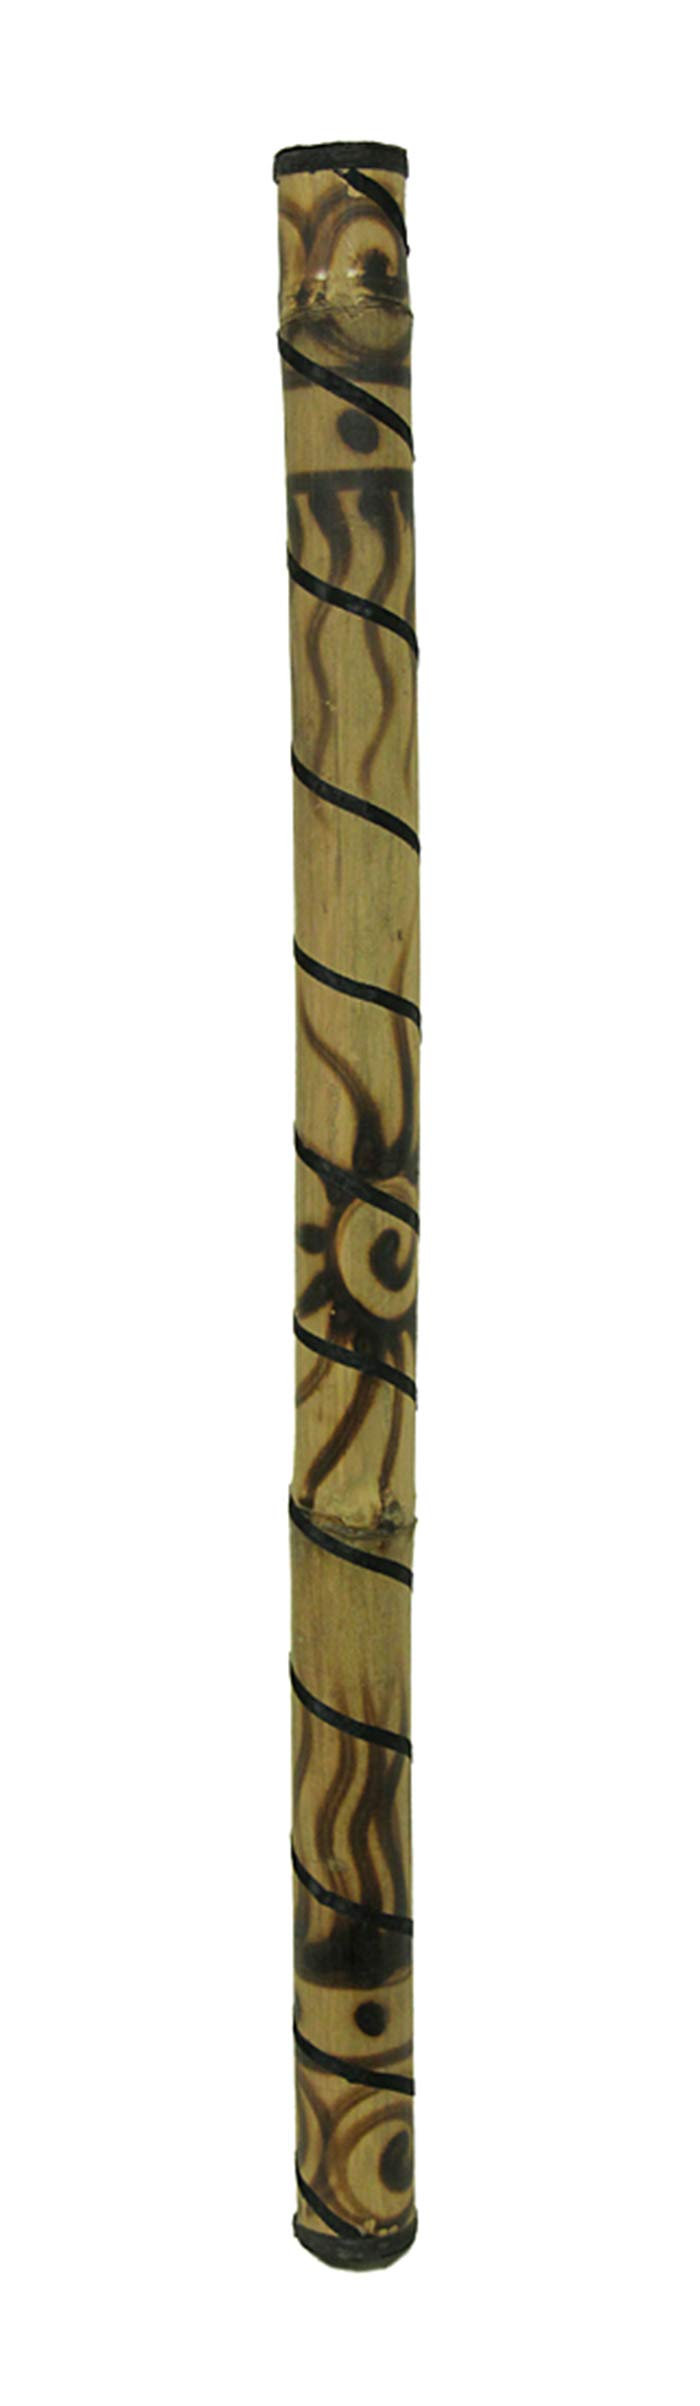 36 Inch Bamboo Rain Stick Percussion Instrument Wood Burned Sun Design by Zeckos